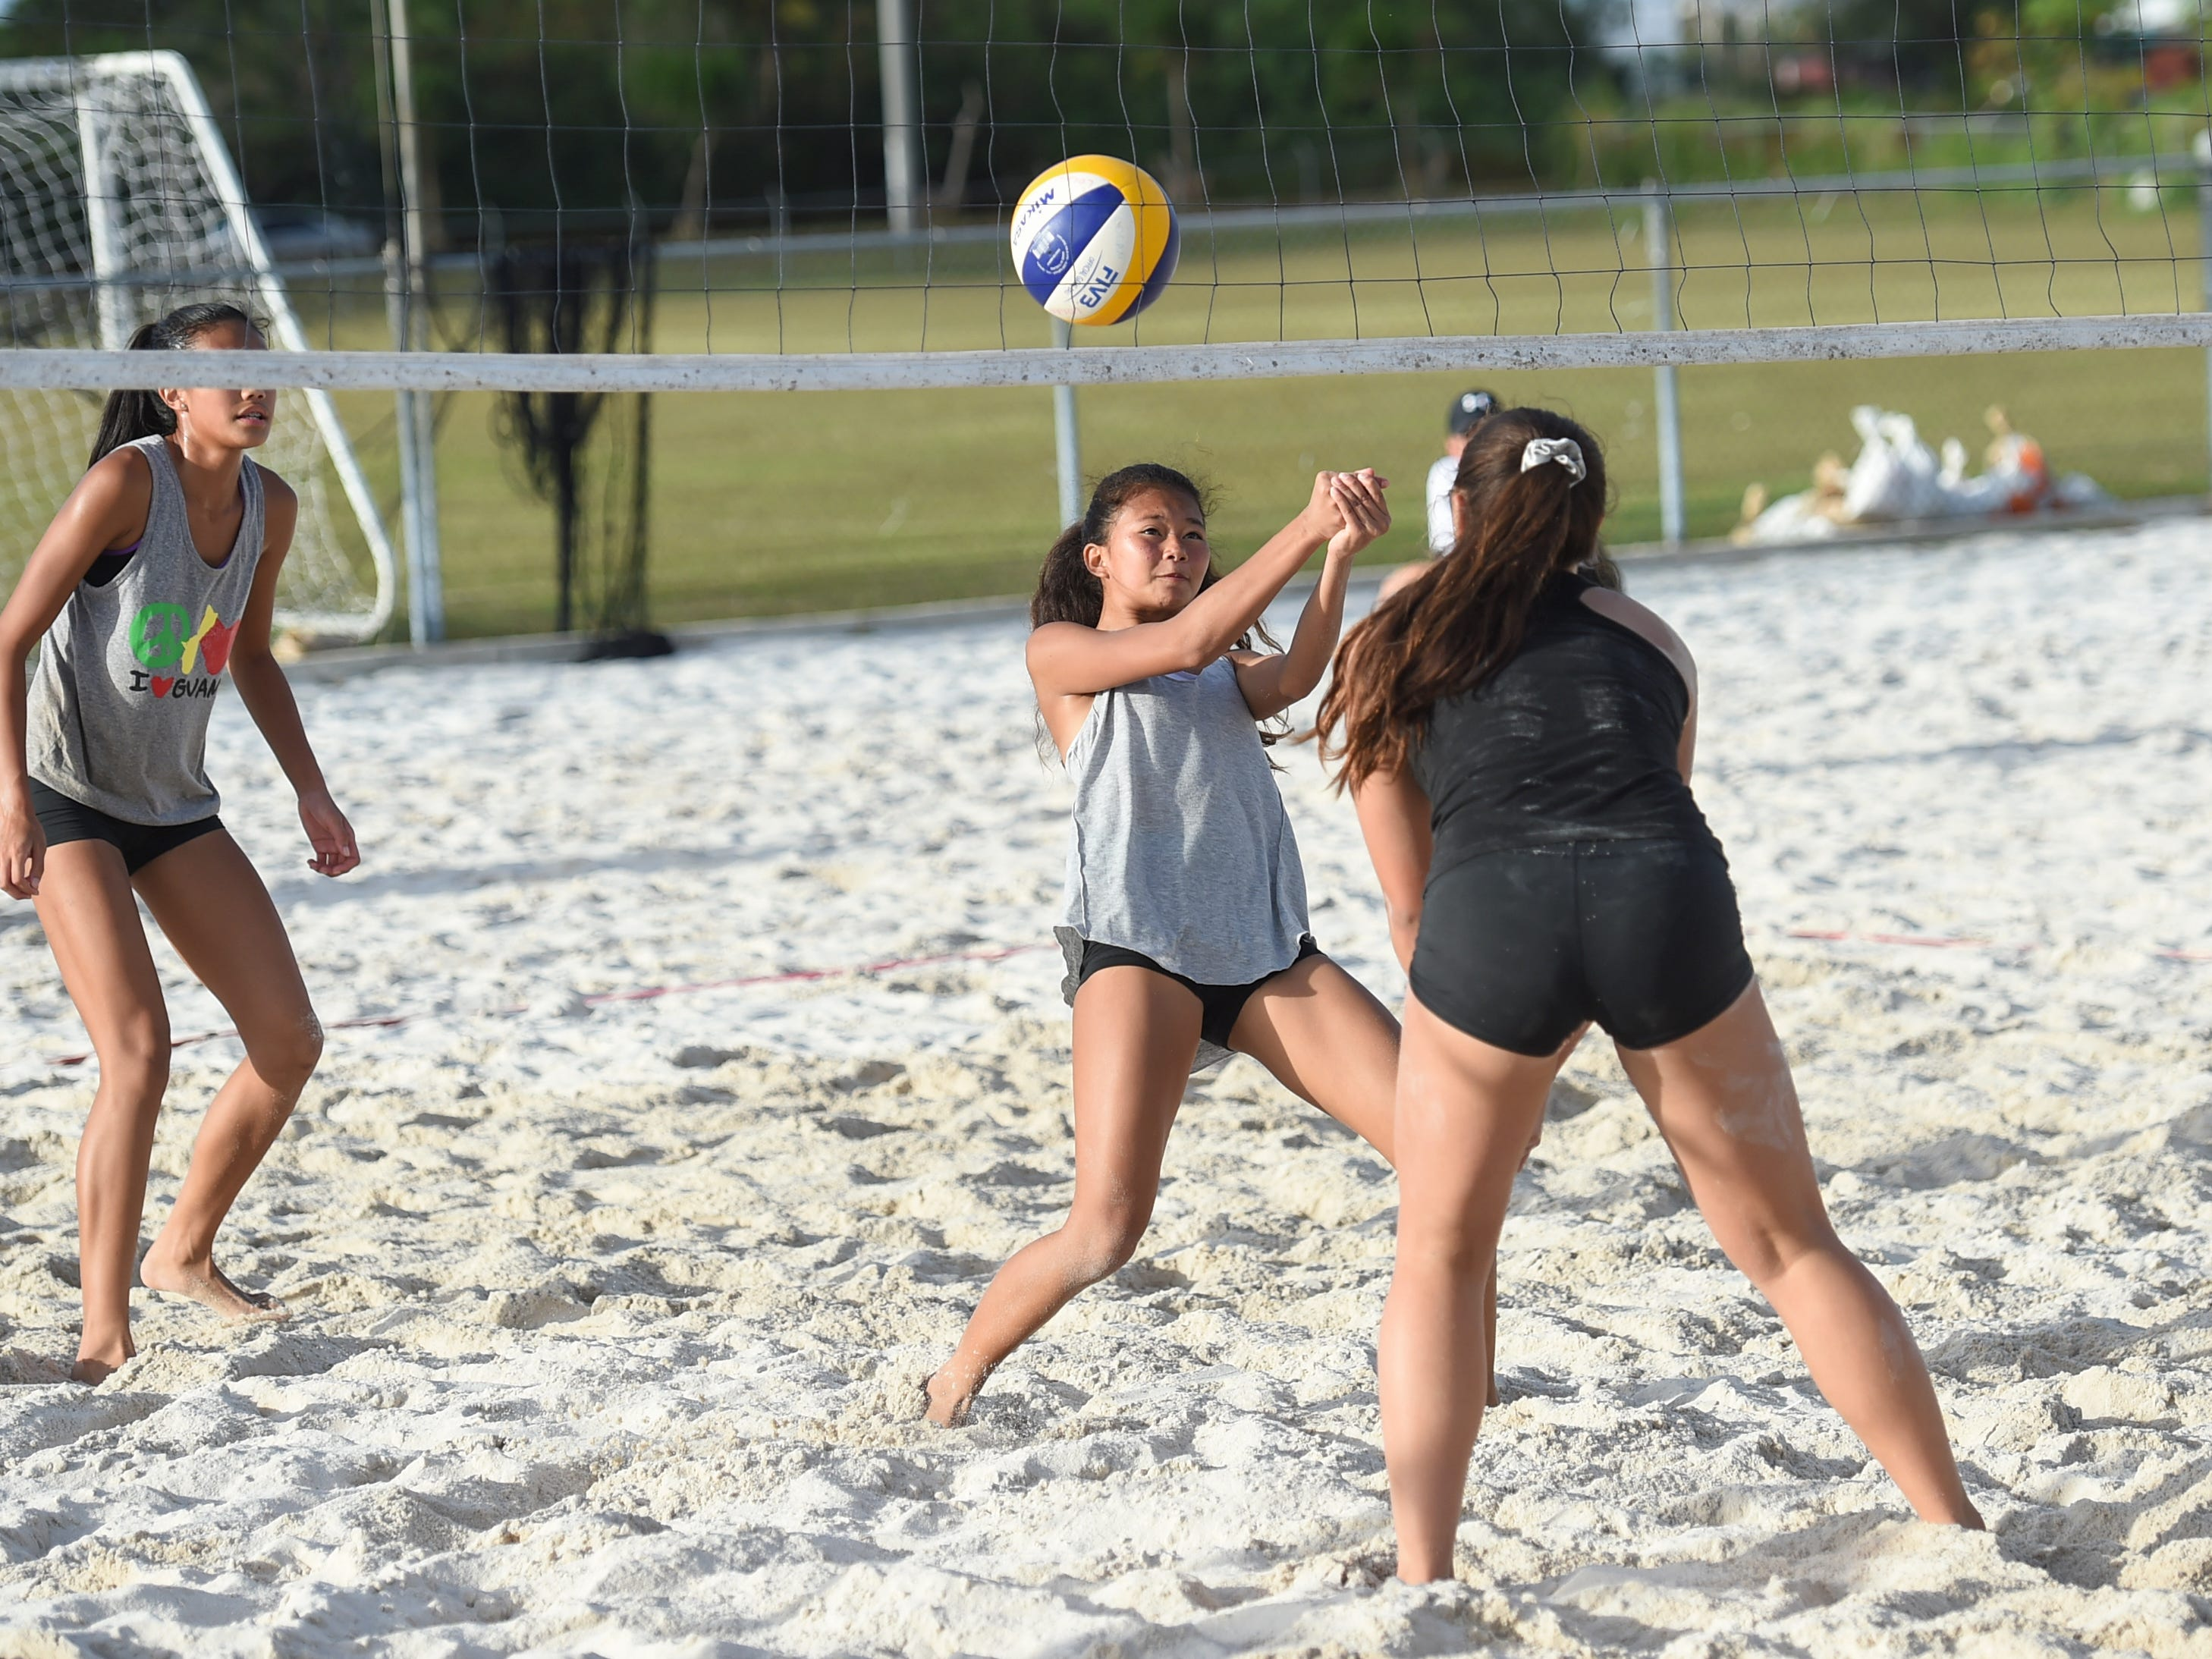 Yasmeen Lopez attempts to volley the ball during the IIAAG Beach Volleyball championship game at the Guam Football Association National Training Center in Dededo, March 12, 2019.